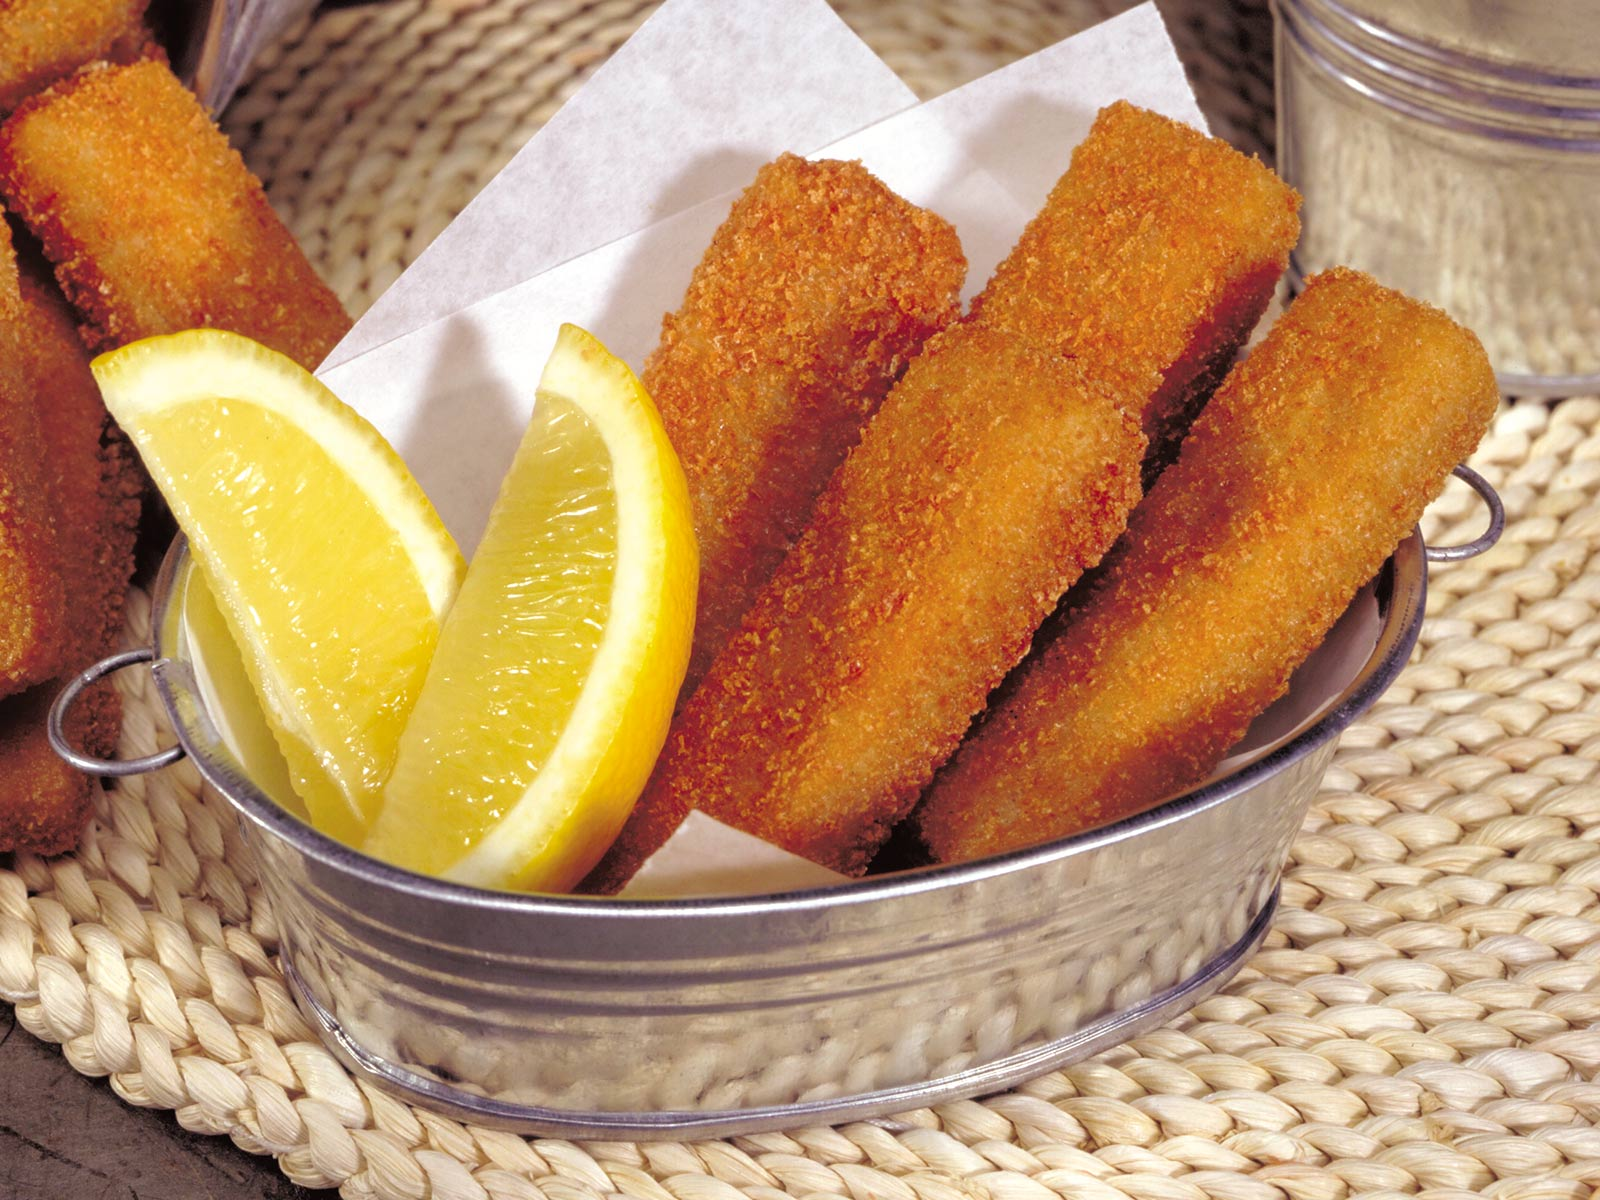 Value Fish Breaded Wild Alaska Pollock Fish Finger Portion 1 oz Oven Ready 449248